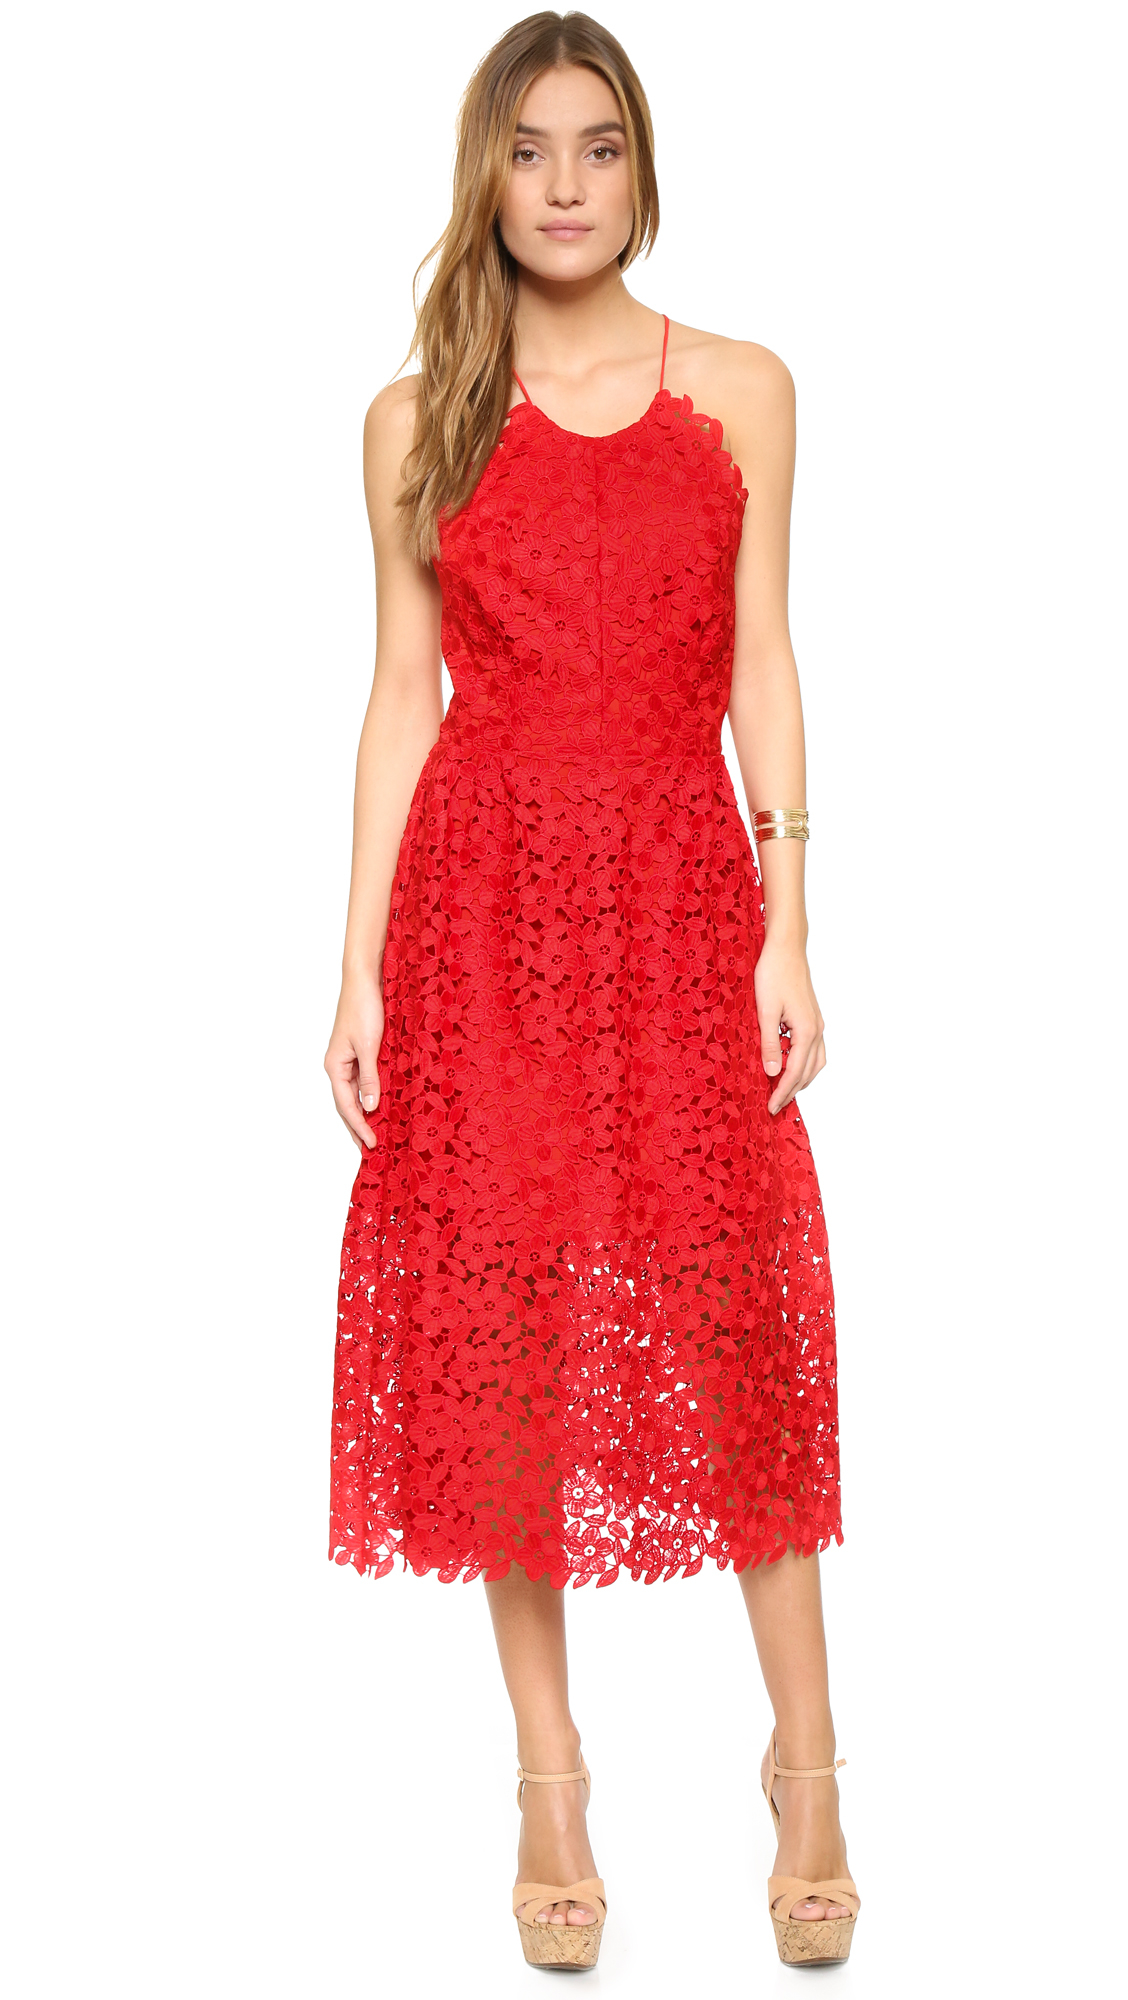 a1a451cc5c Lyst - Cynthia Rowley Lace Back Dress in Red